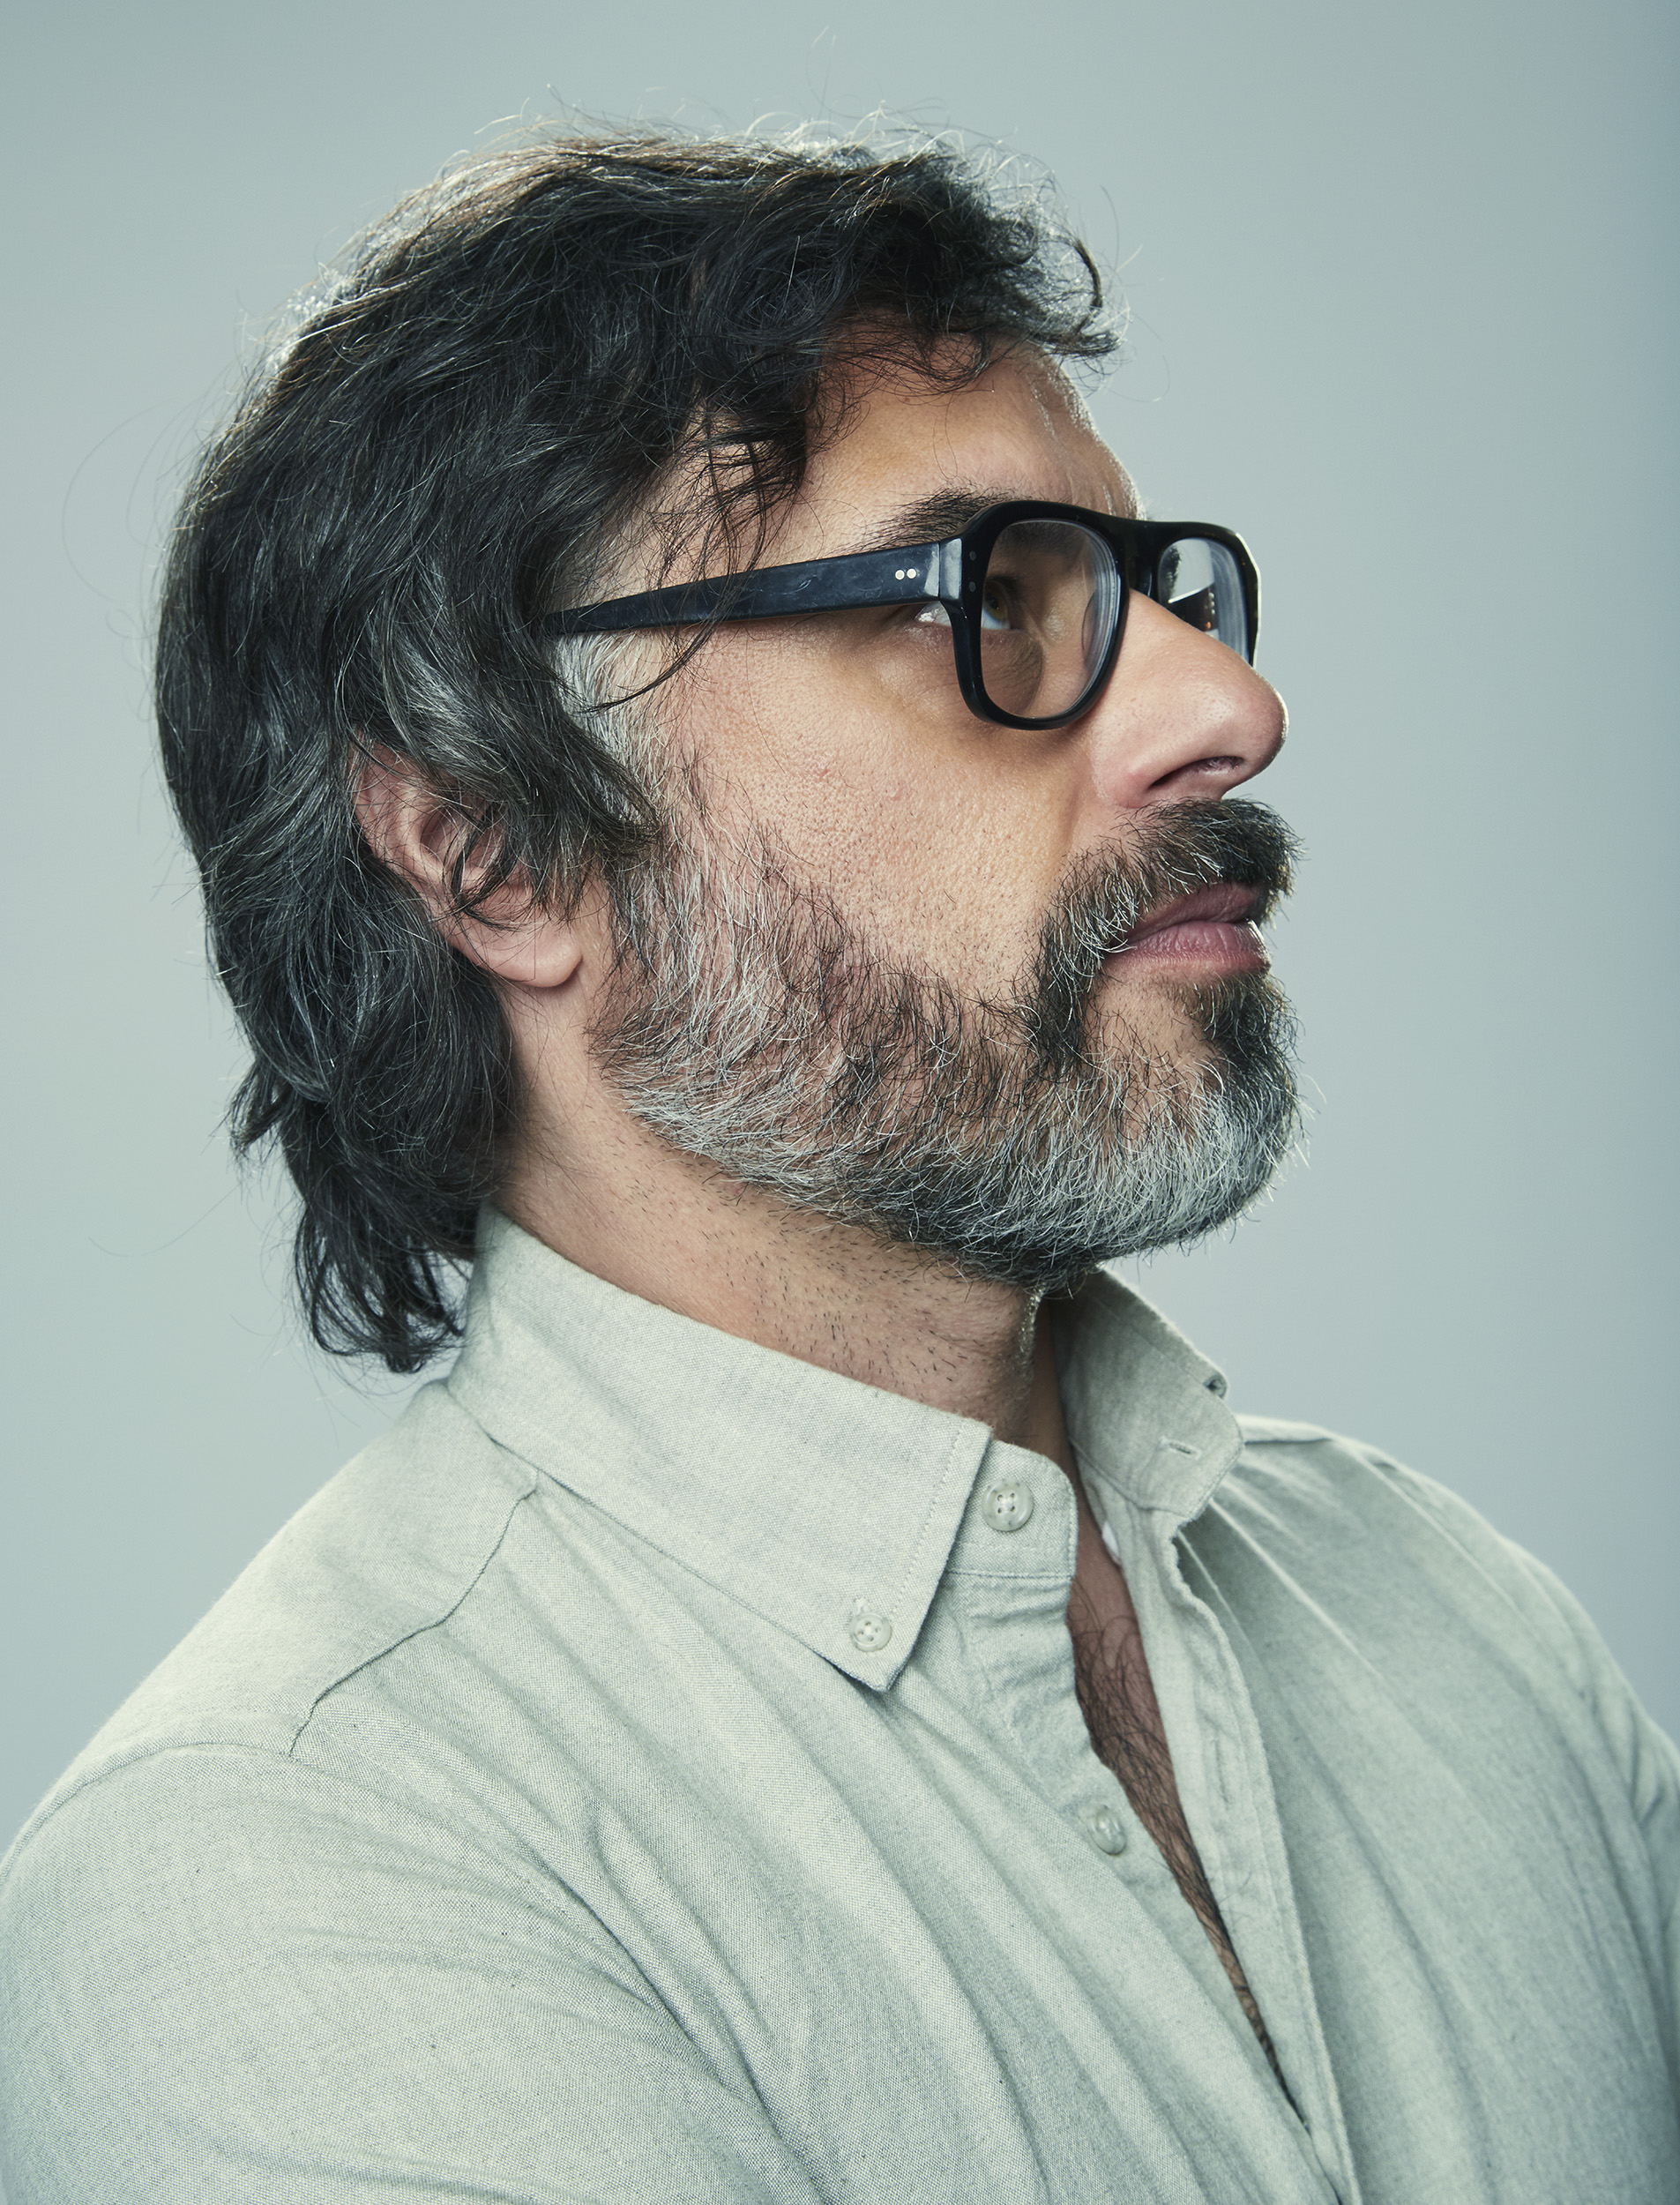 Jemaine-Clement-by-Robert-Ascroft-01